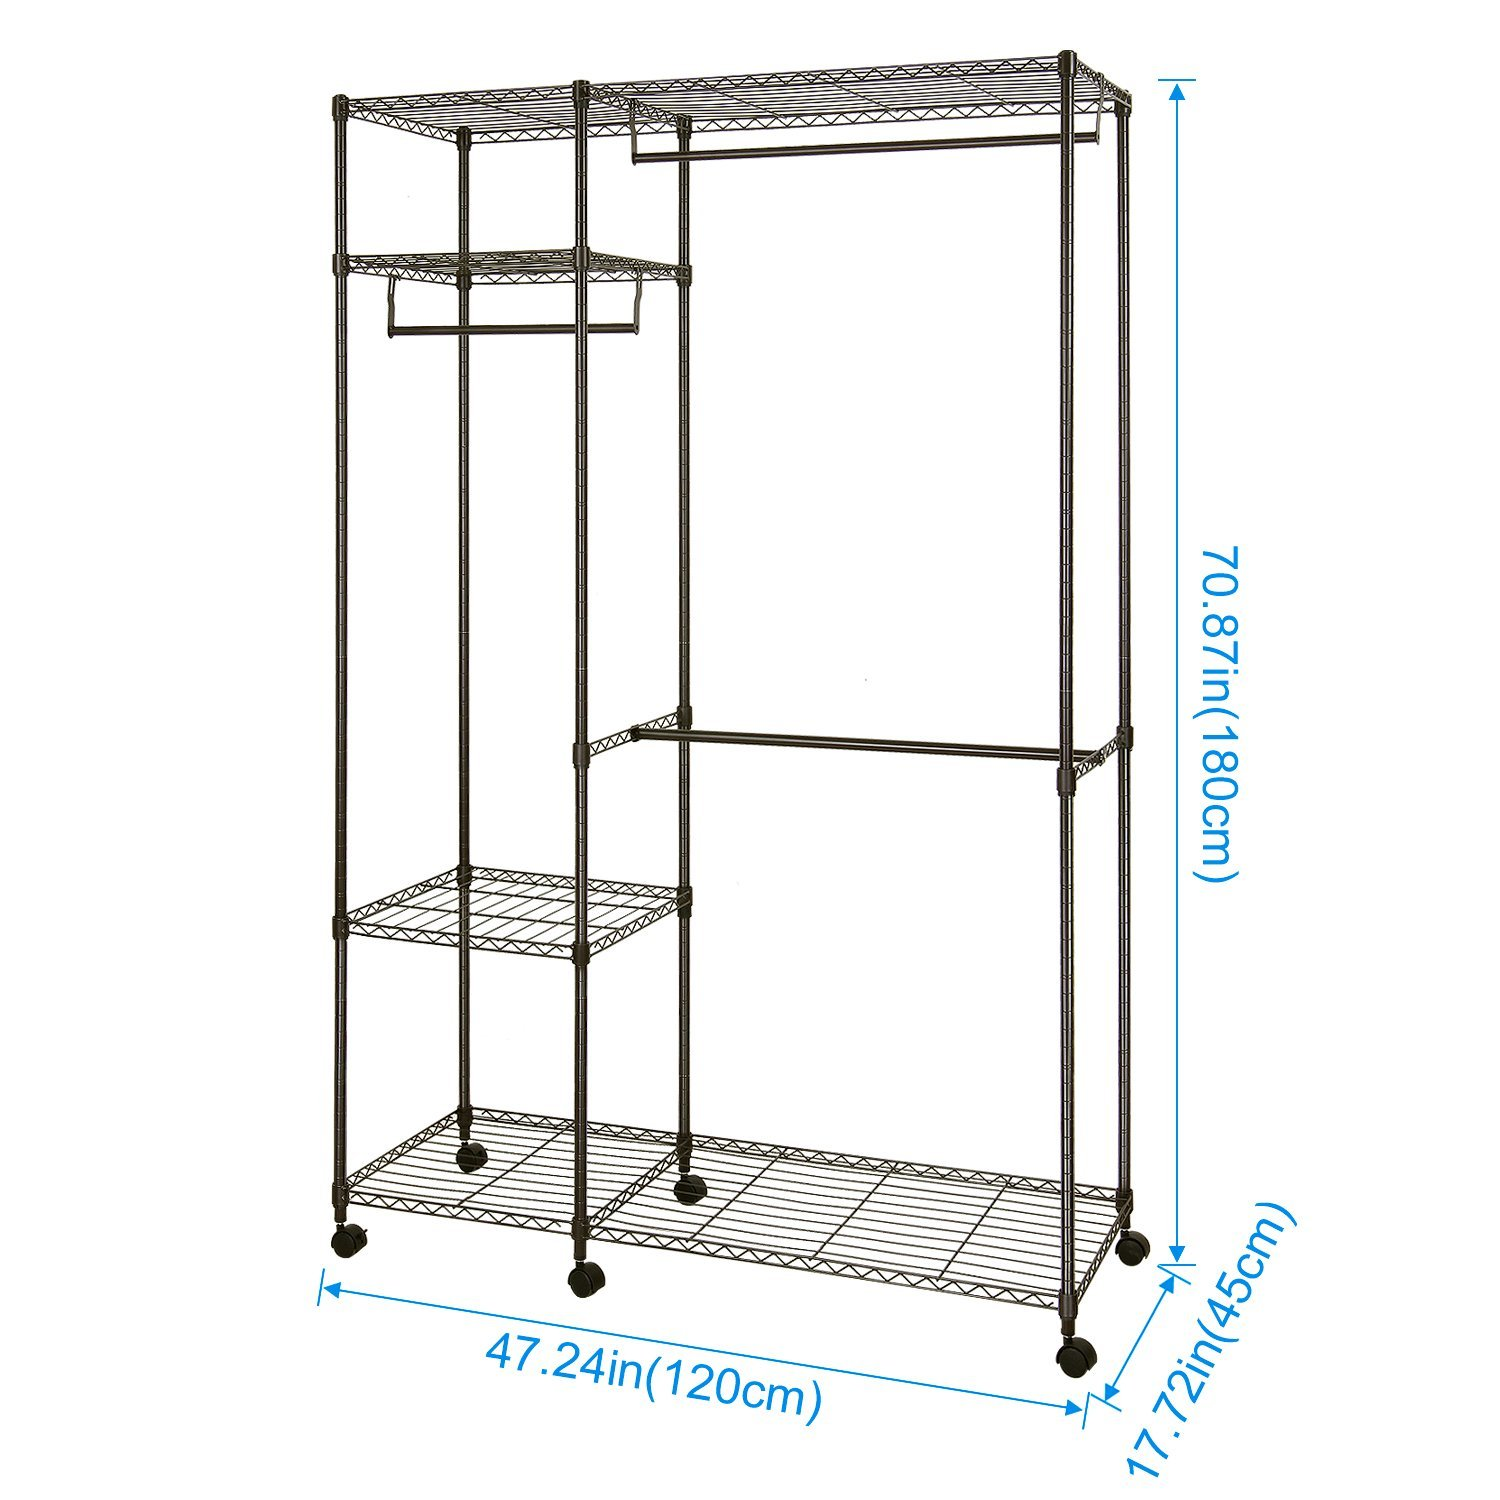 portable metal rack standing free frame freestanding clothes details storage wardrobe organizer itm double